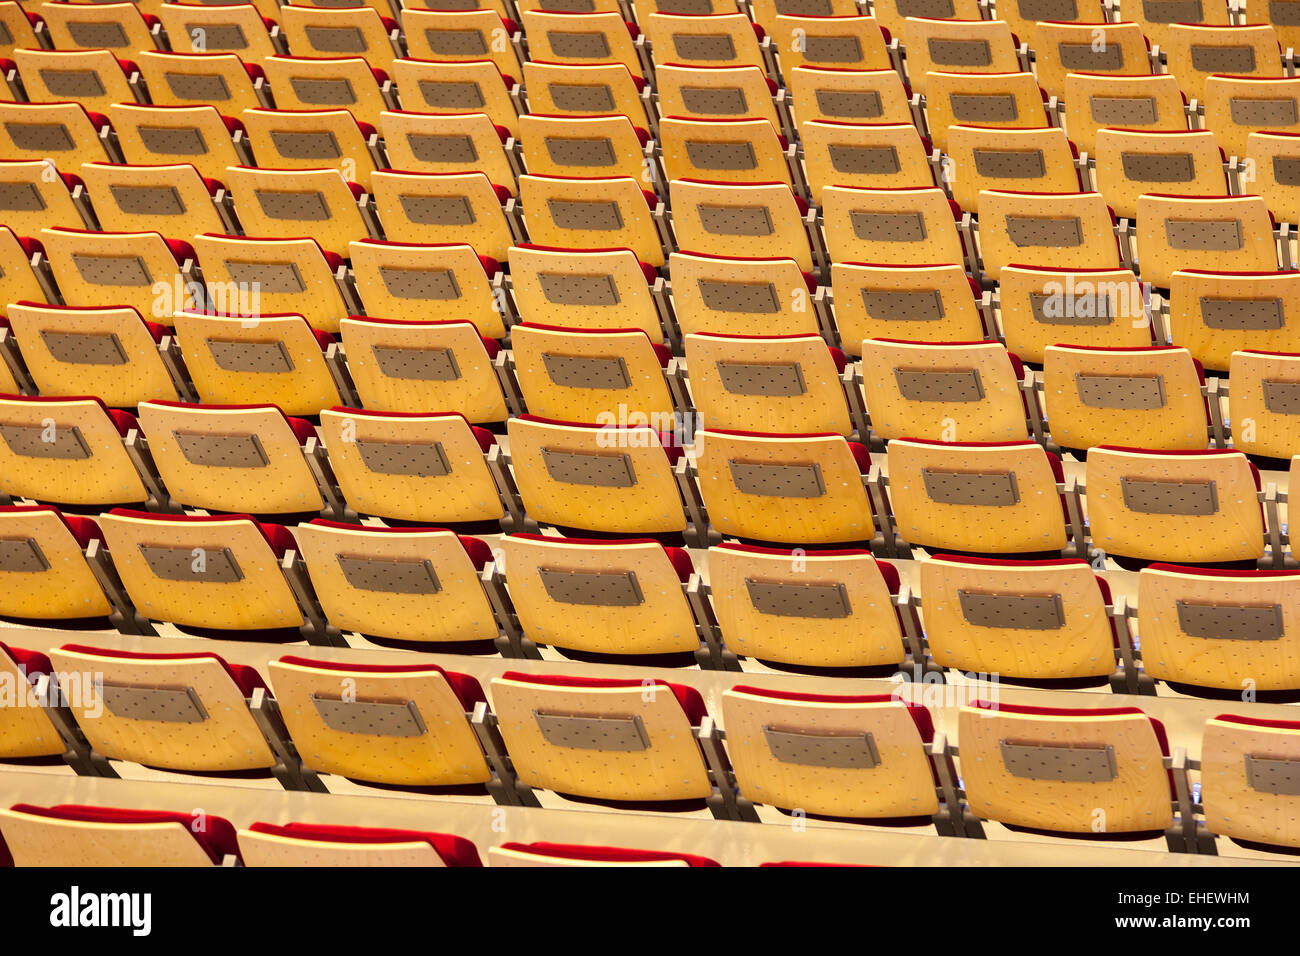 Rows of many seats in a stadium. - Stock Image